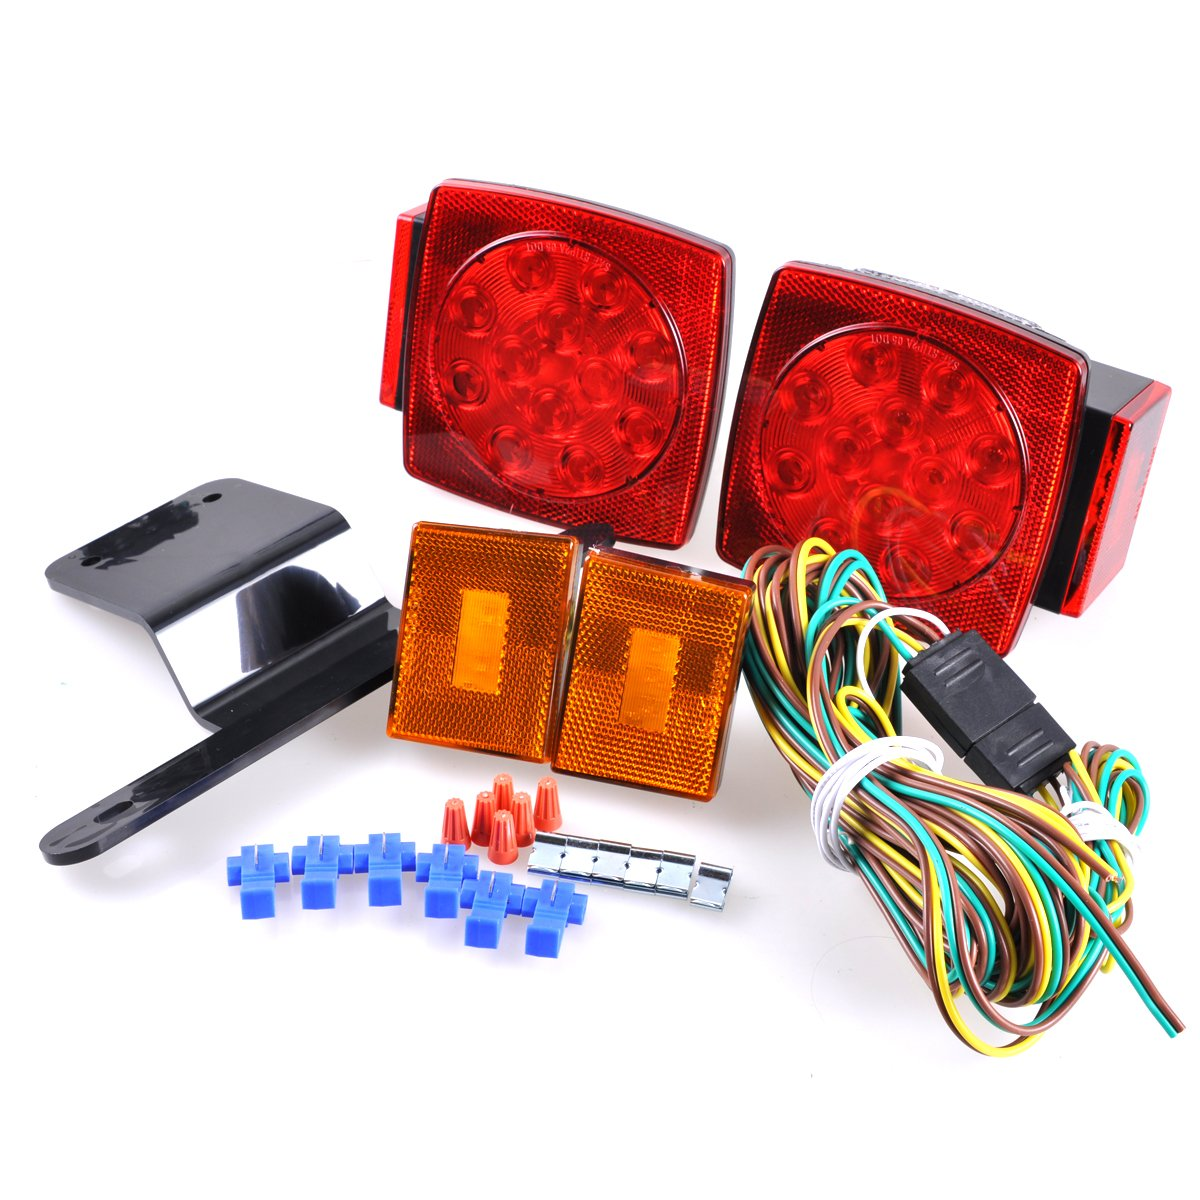 Autoec Led Trailer Light Kit 12v Utility Tail Stop Turn Wiring Diagram On Applications Small Boat Or Trailers Signal Running Lights Universal Mount Combination For Truck Rv Automotive